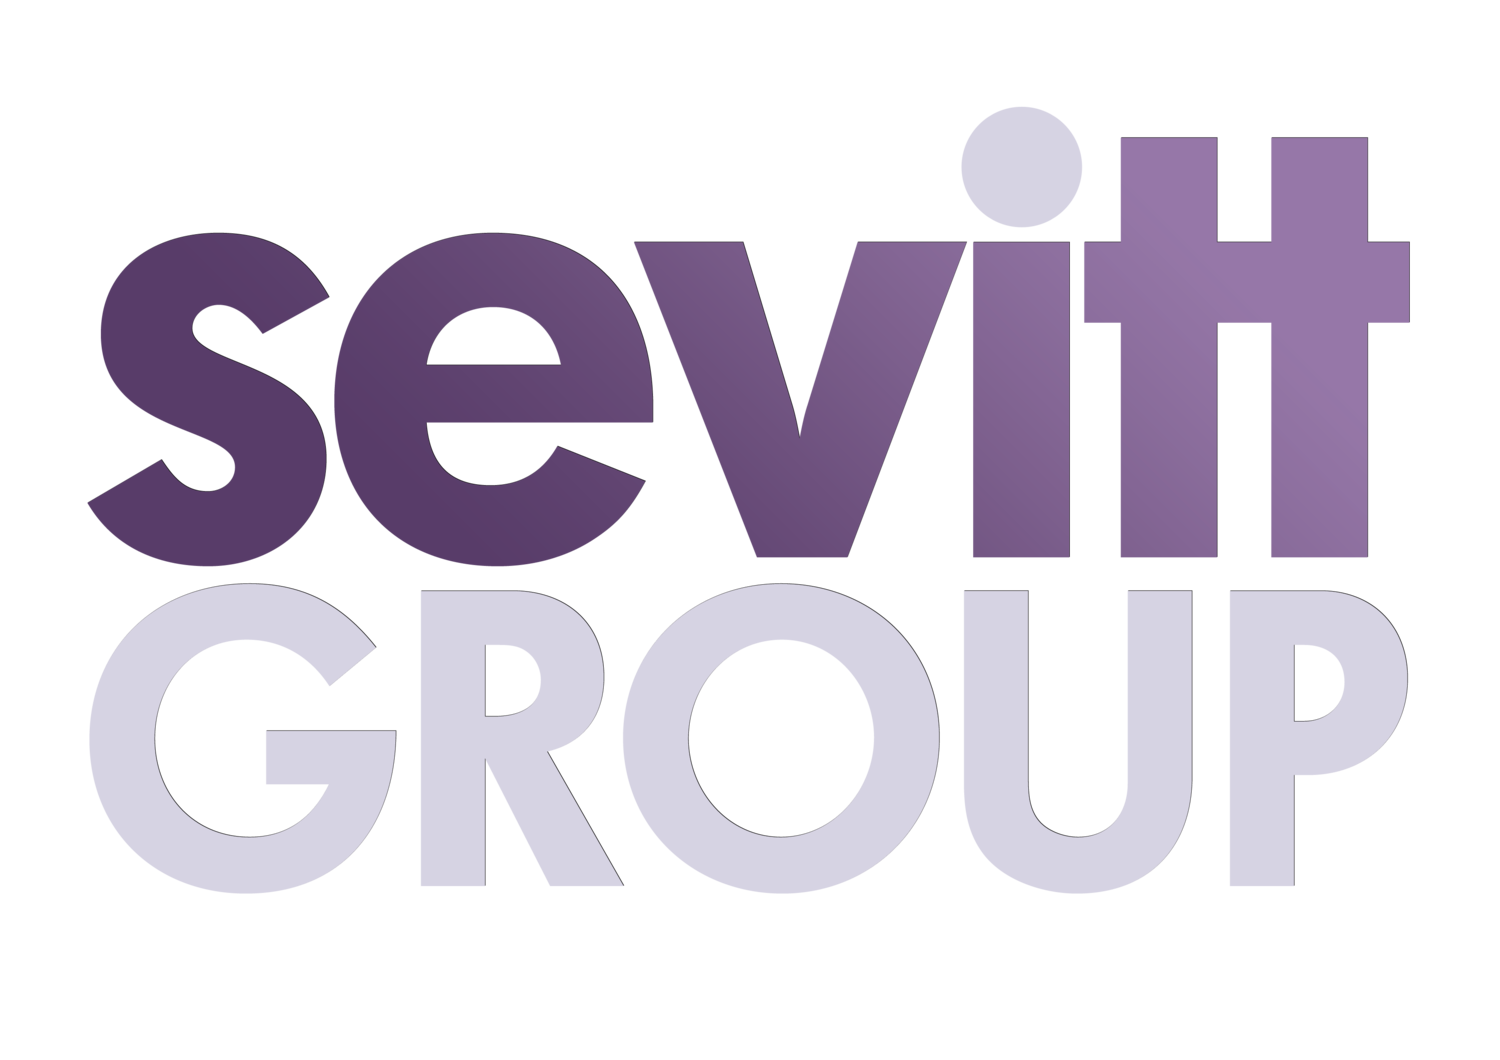 Sevitt Group